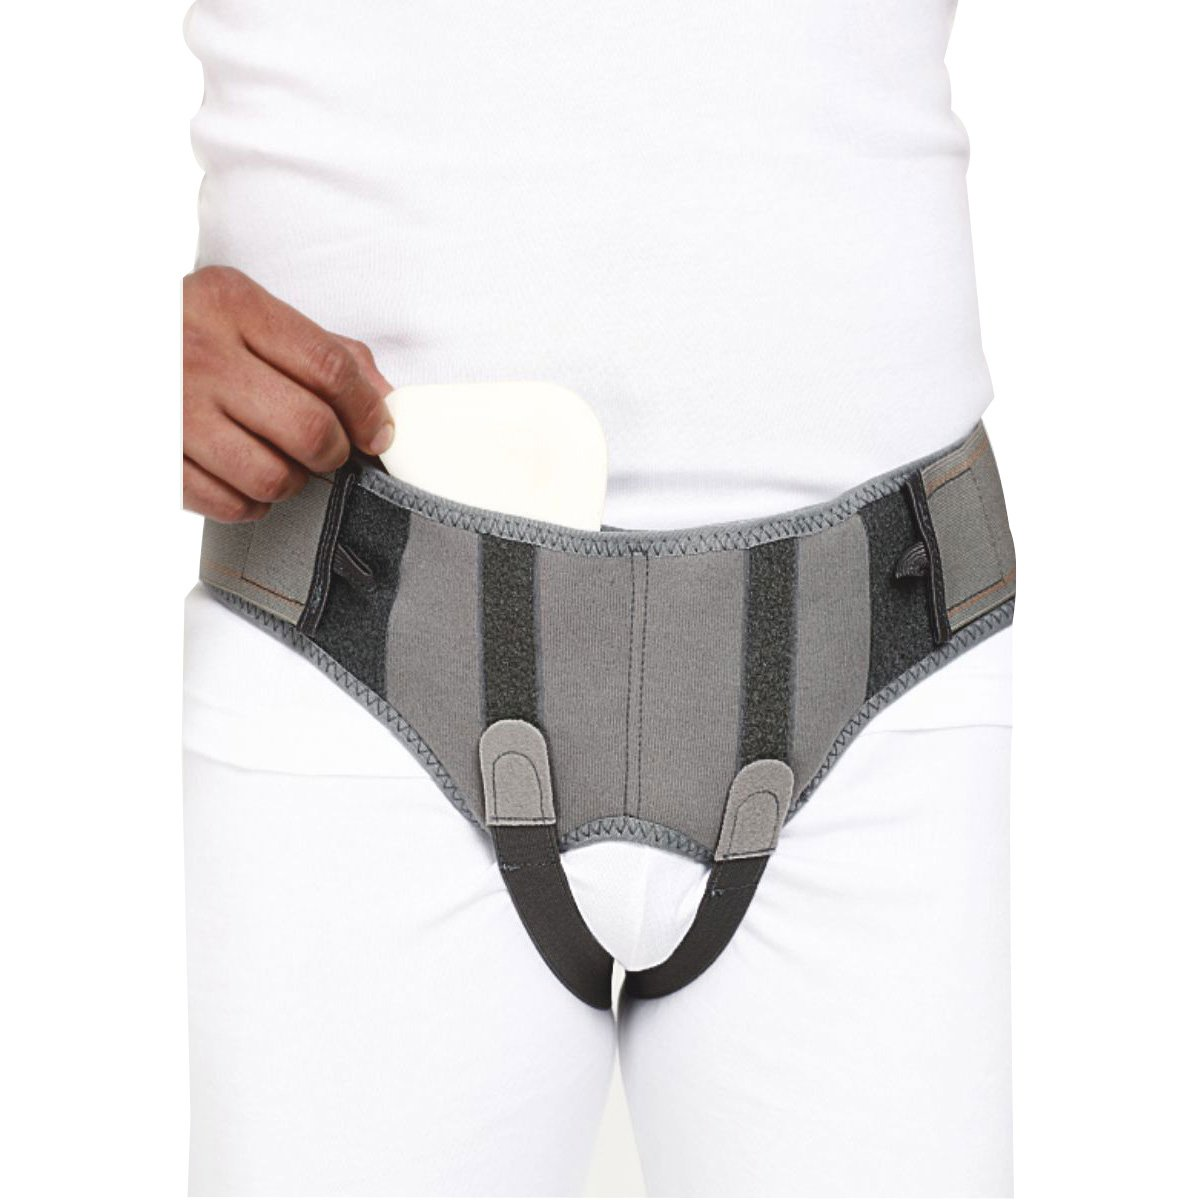 Hernia Belt Support Truss with Special Foam Pads - Superior comfort and Adjustable Pressure - Small